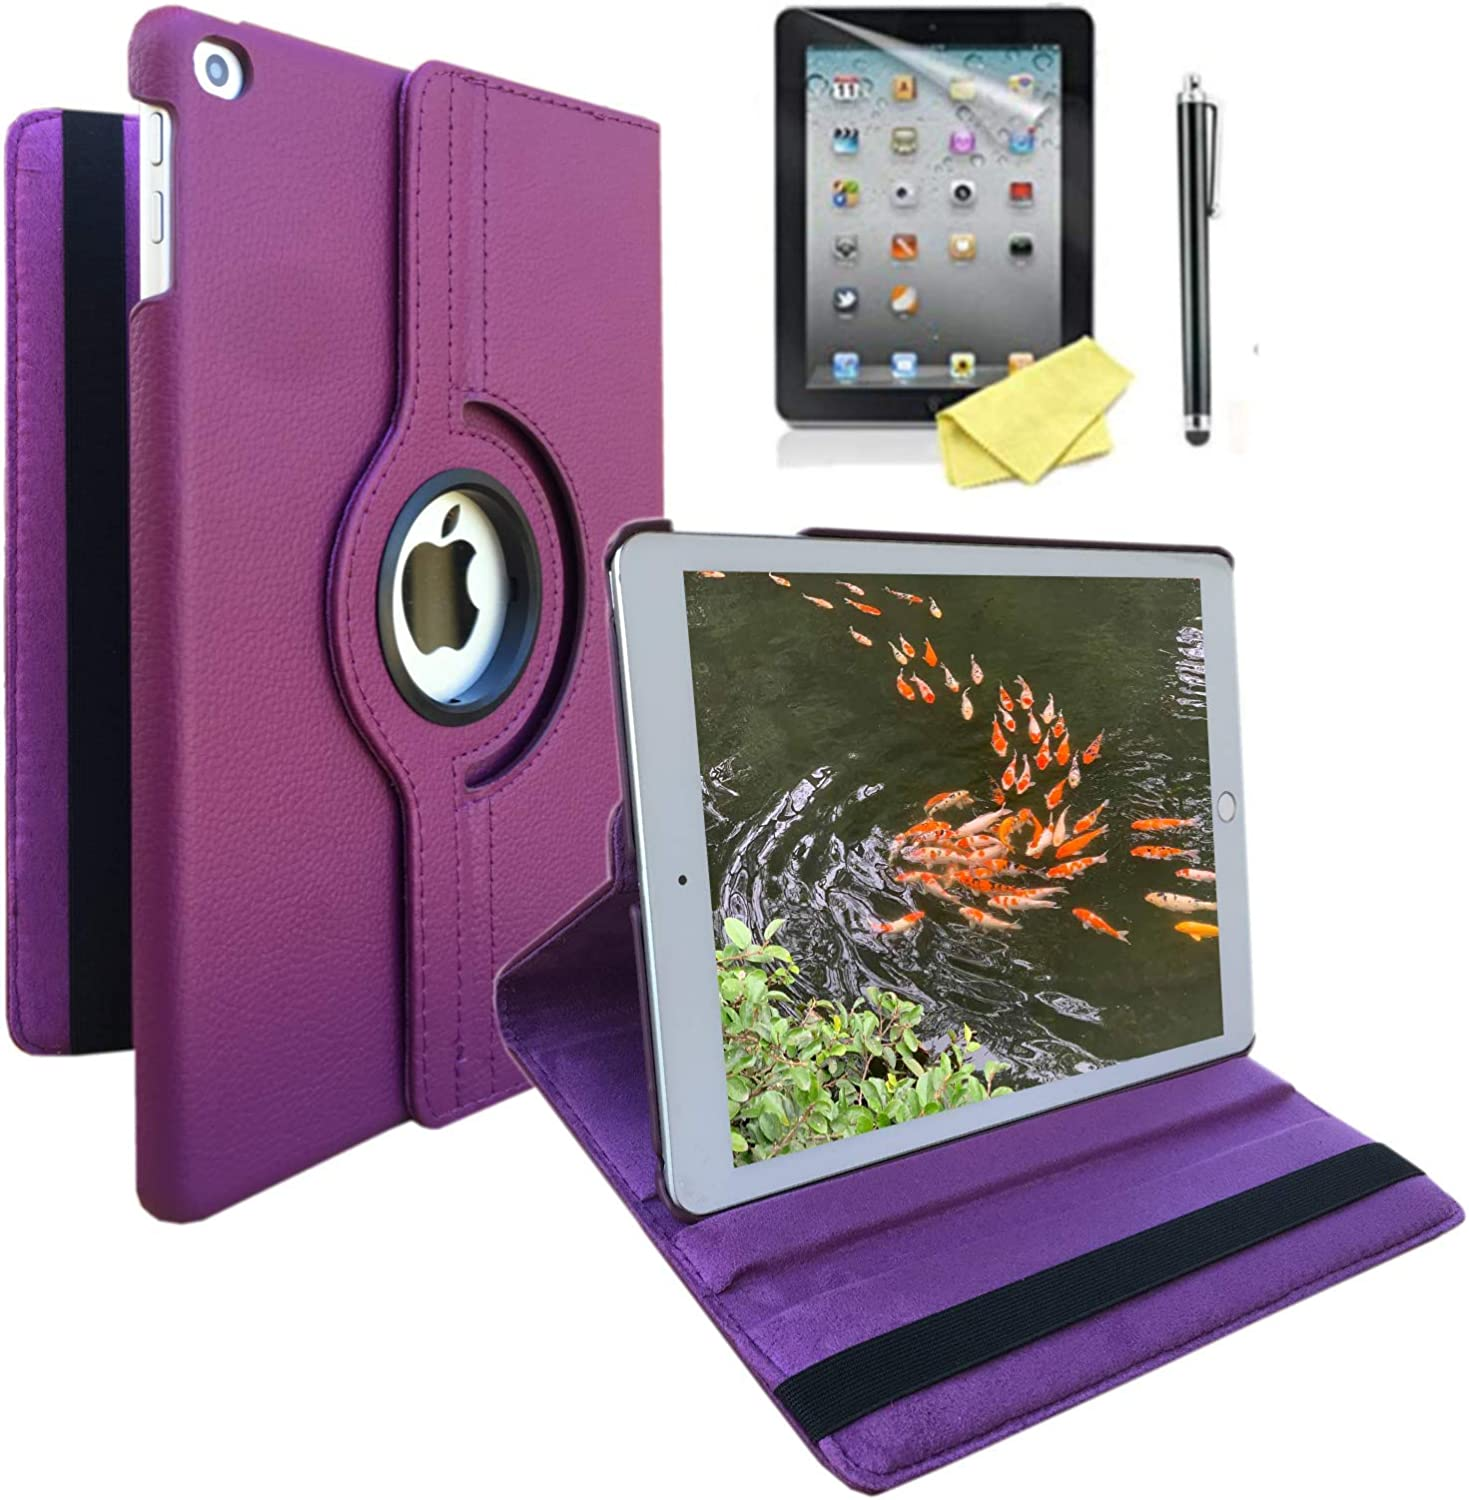 iPad Case Cover Rotating Stand with Wake Up/Sleep Function for Apple ipad 2nd 3rd 4th Generation Model A1395 A1396 A1397 A1416 A1430 A1403 A1458 A1460 or A1459 (Purple case)